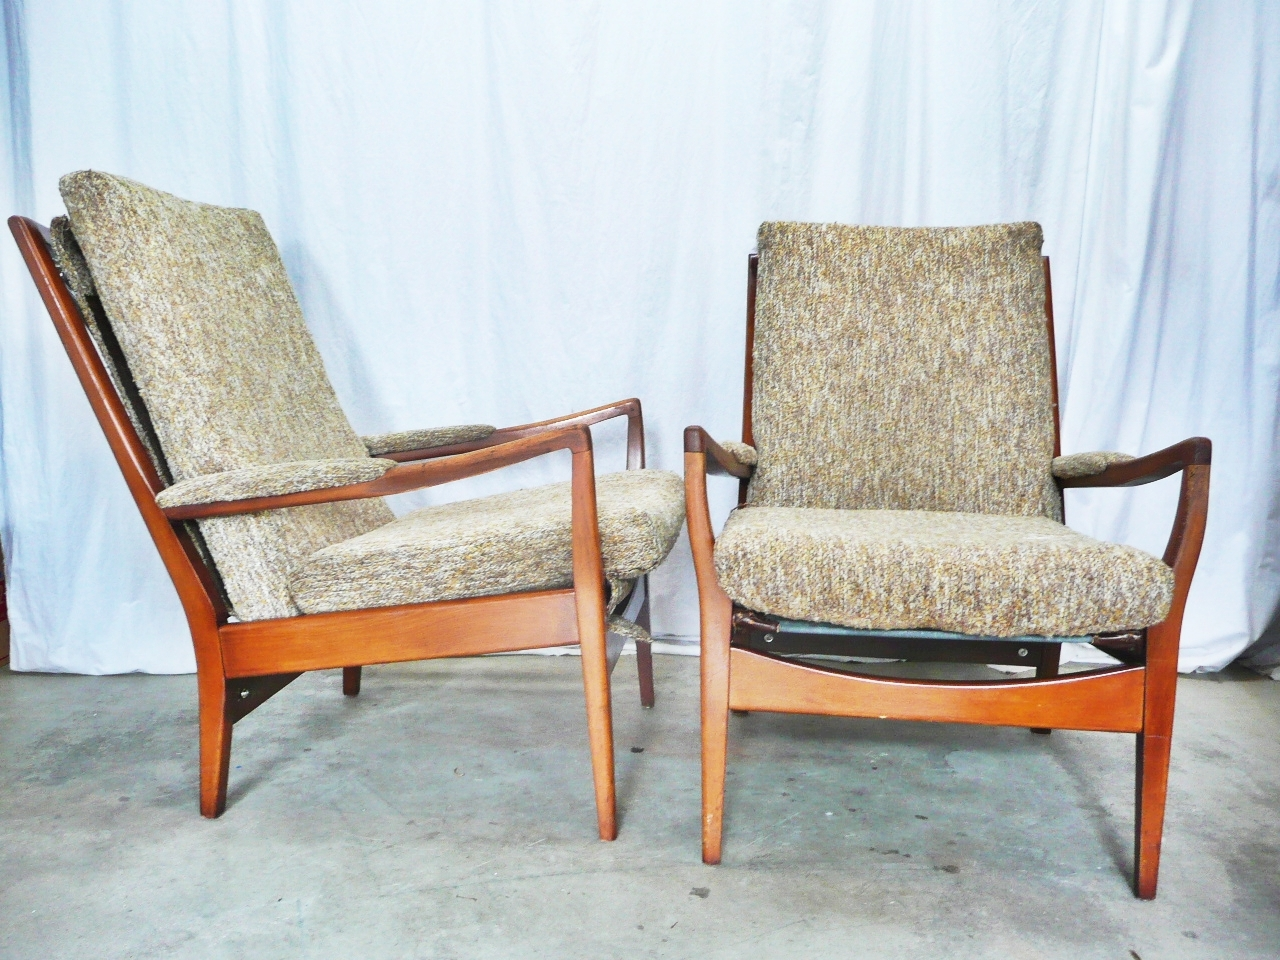 Excellent Preferred Cintique Armchairs Inside Modern Mid Century Danish Vintage Furniture Shop Used (Image 6 of 15)